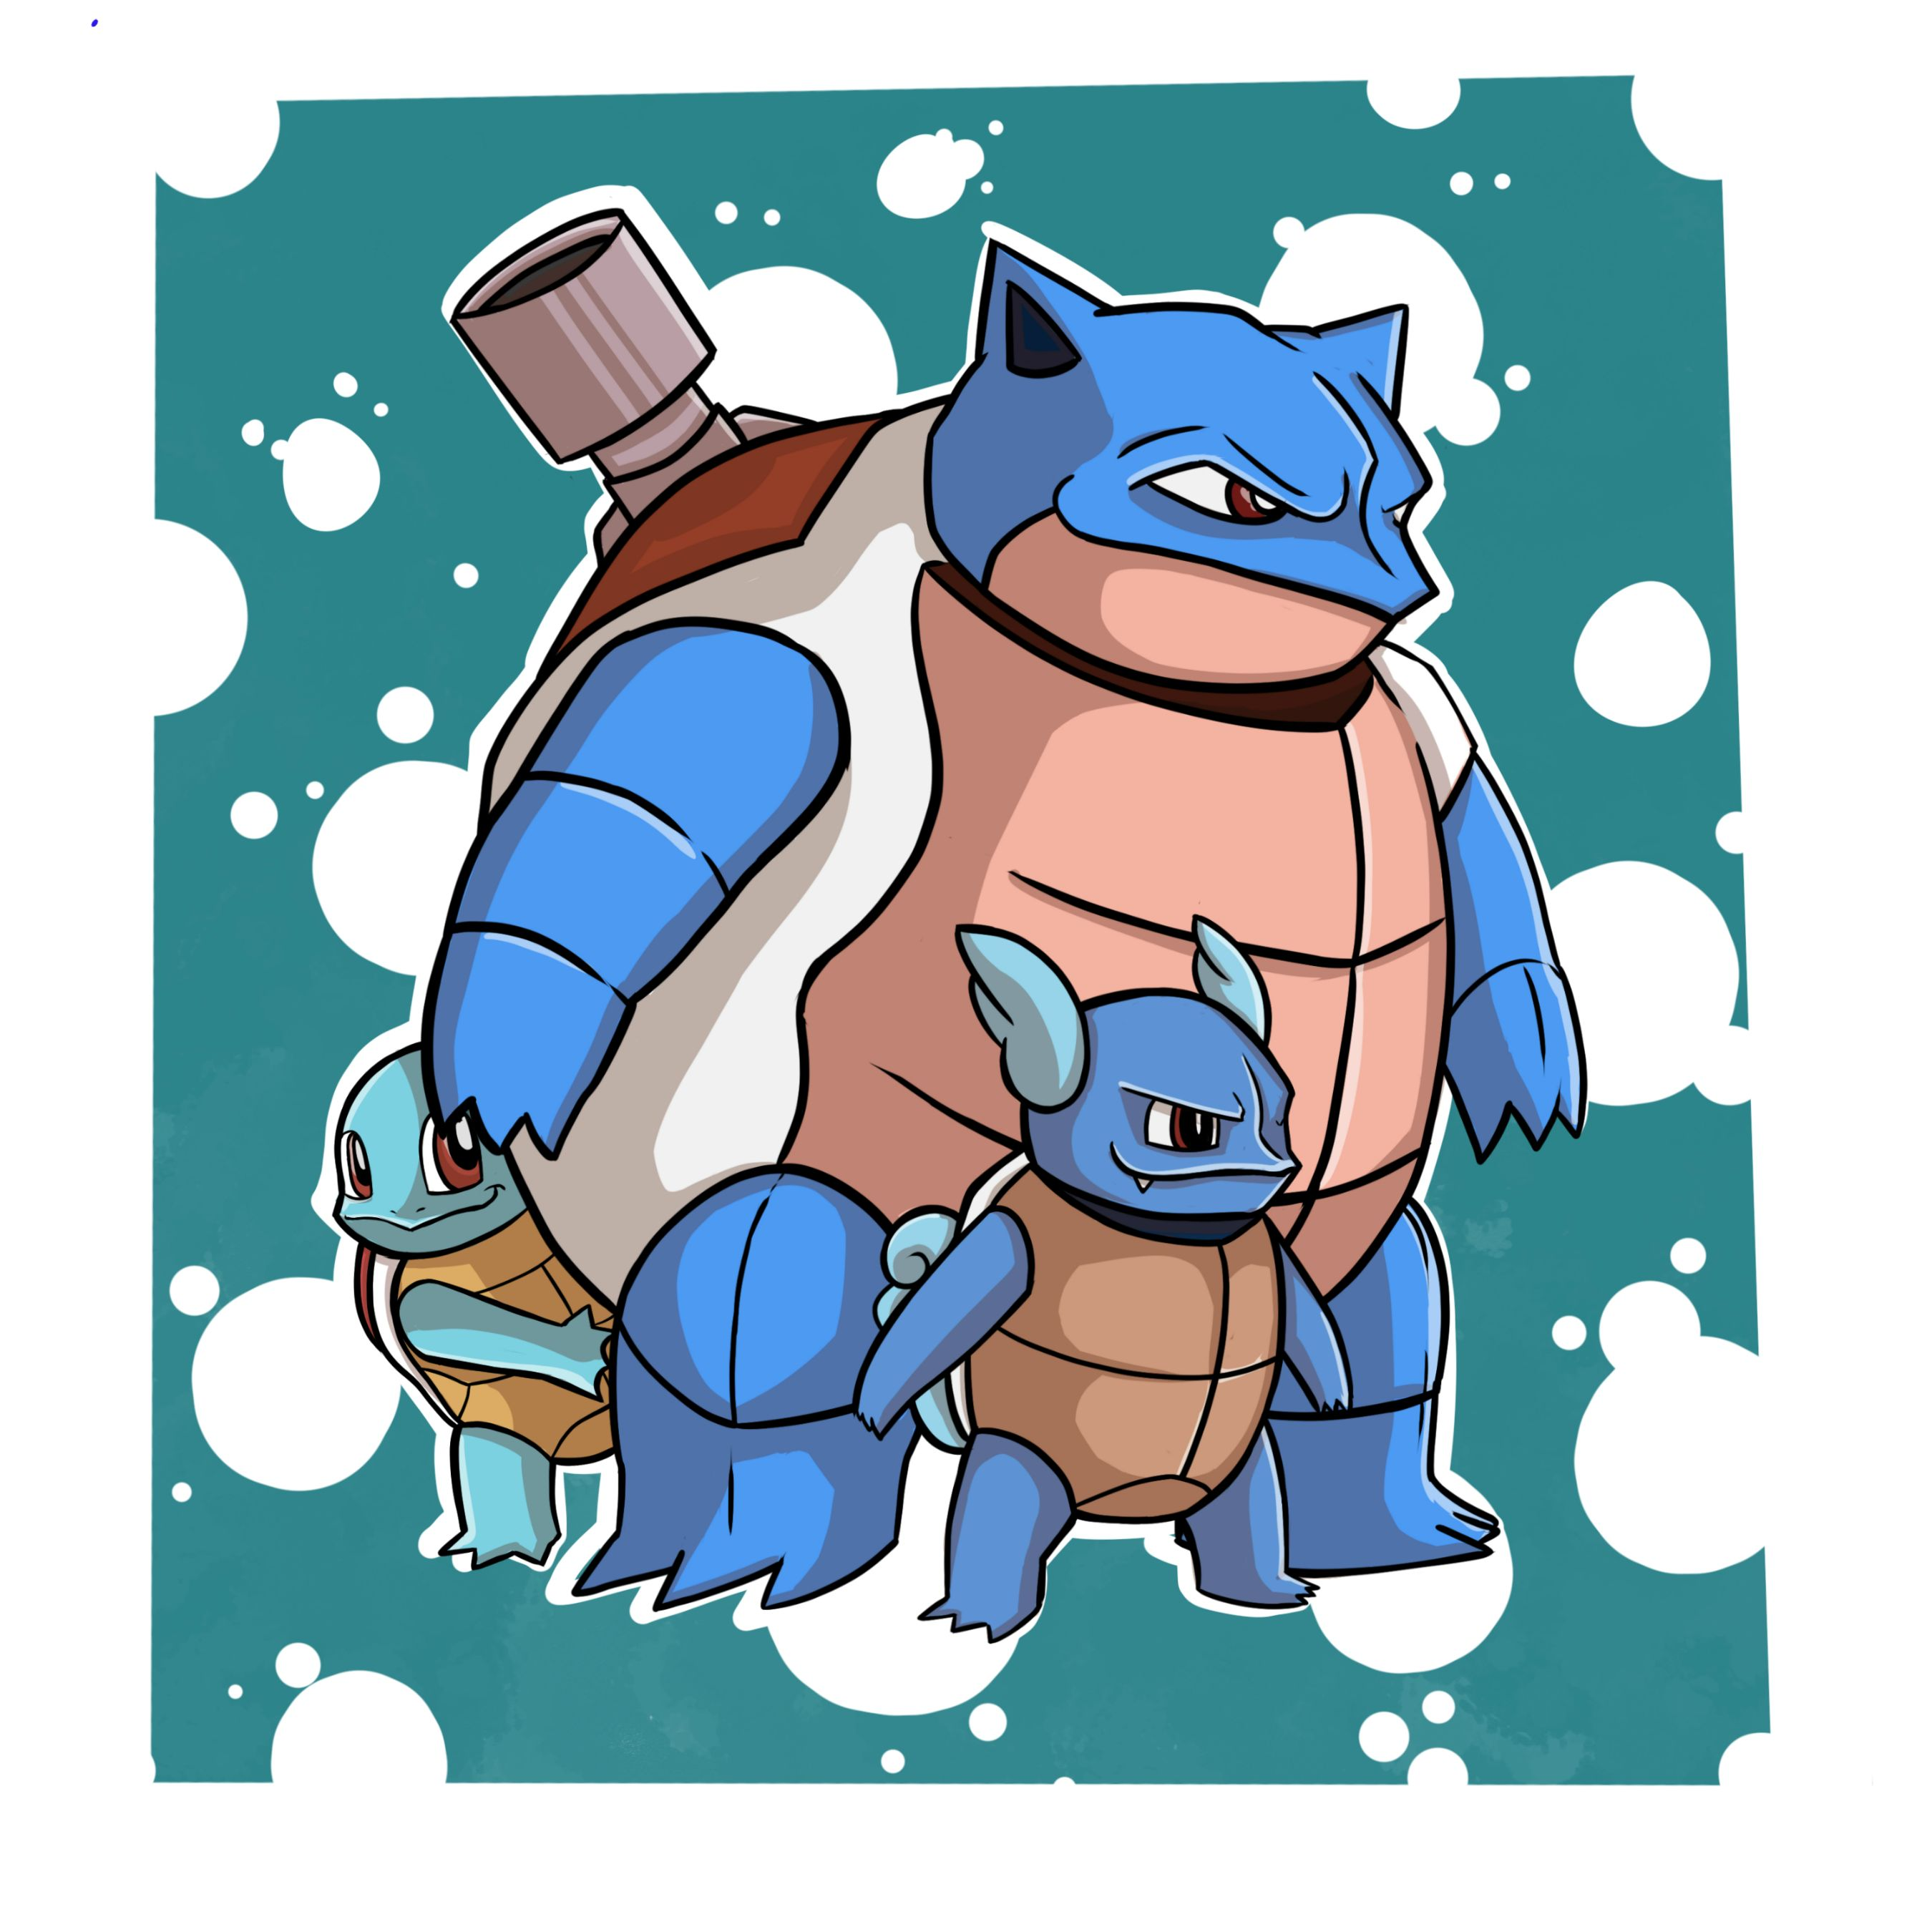 Pokemon Blastoise Drawing At Getdrawings Com Free For Personal Use